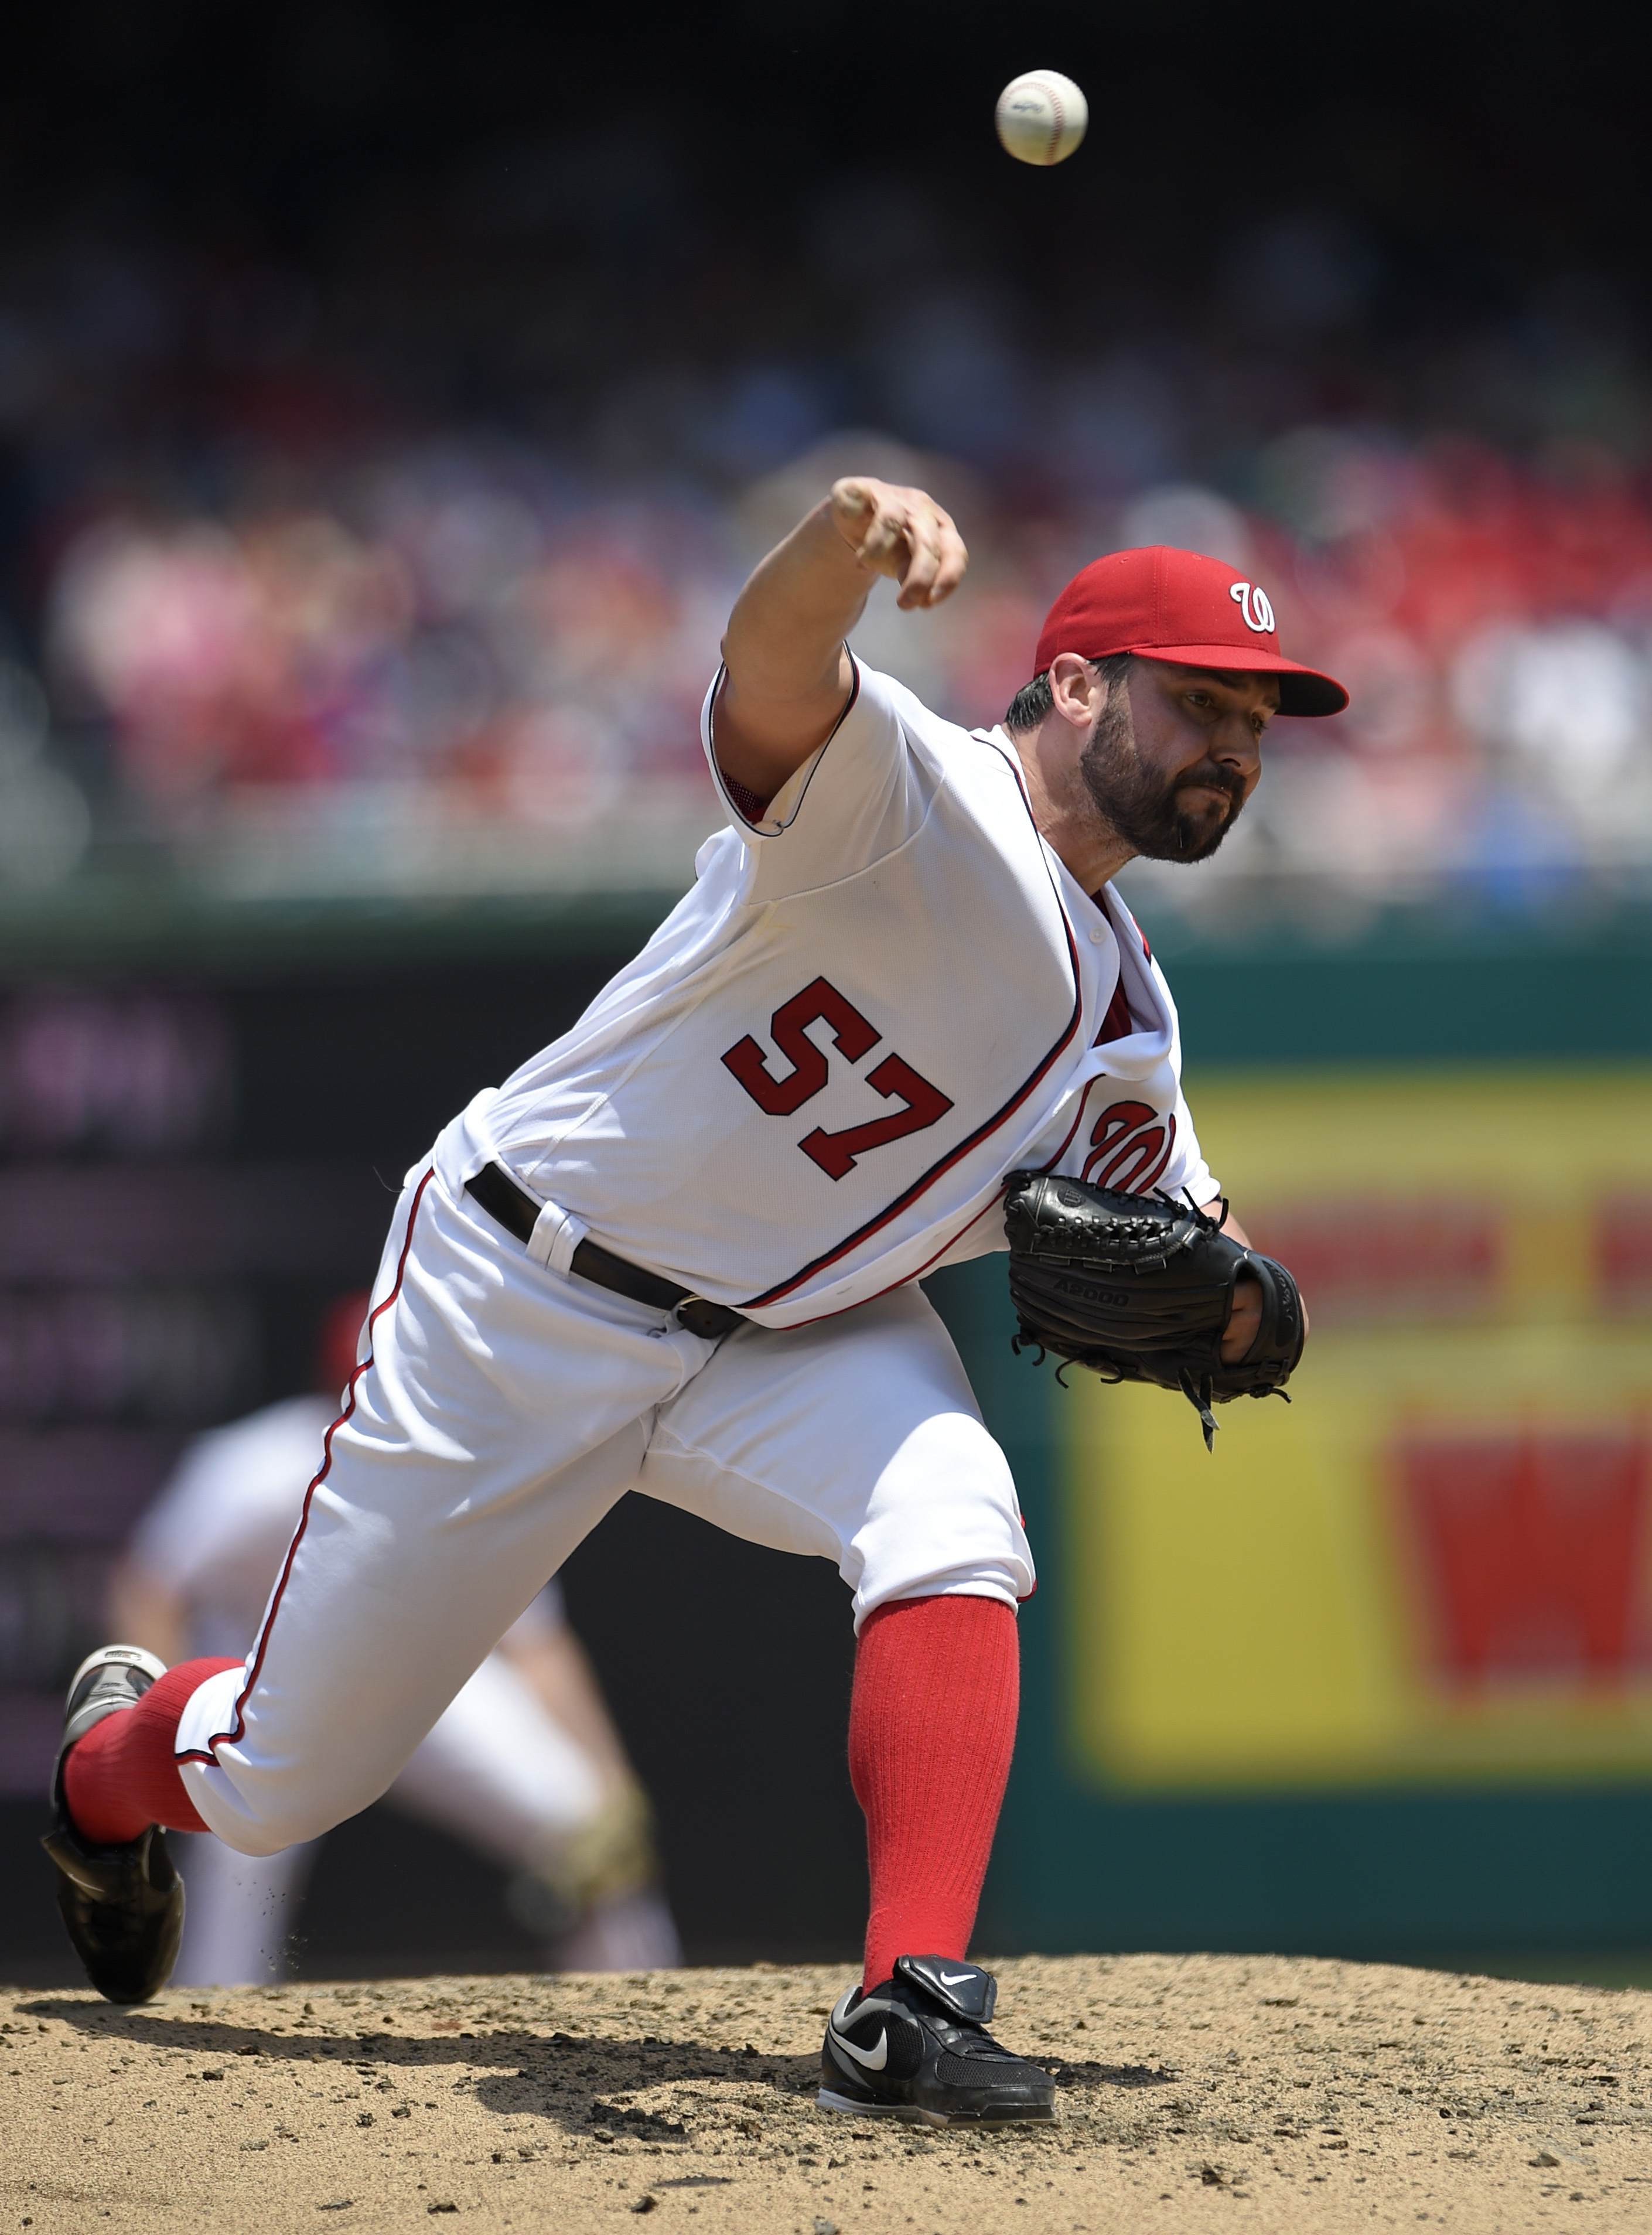 Washington Nationals starting pitcher Tanner Roark delivers a pitch during the fourth inning of a baseball game against the Philadelphia Phillies, Saturday, June 11, 2016, in Washington. (AP Photo/Nick Wass)